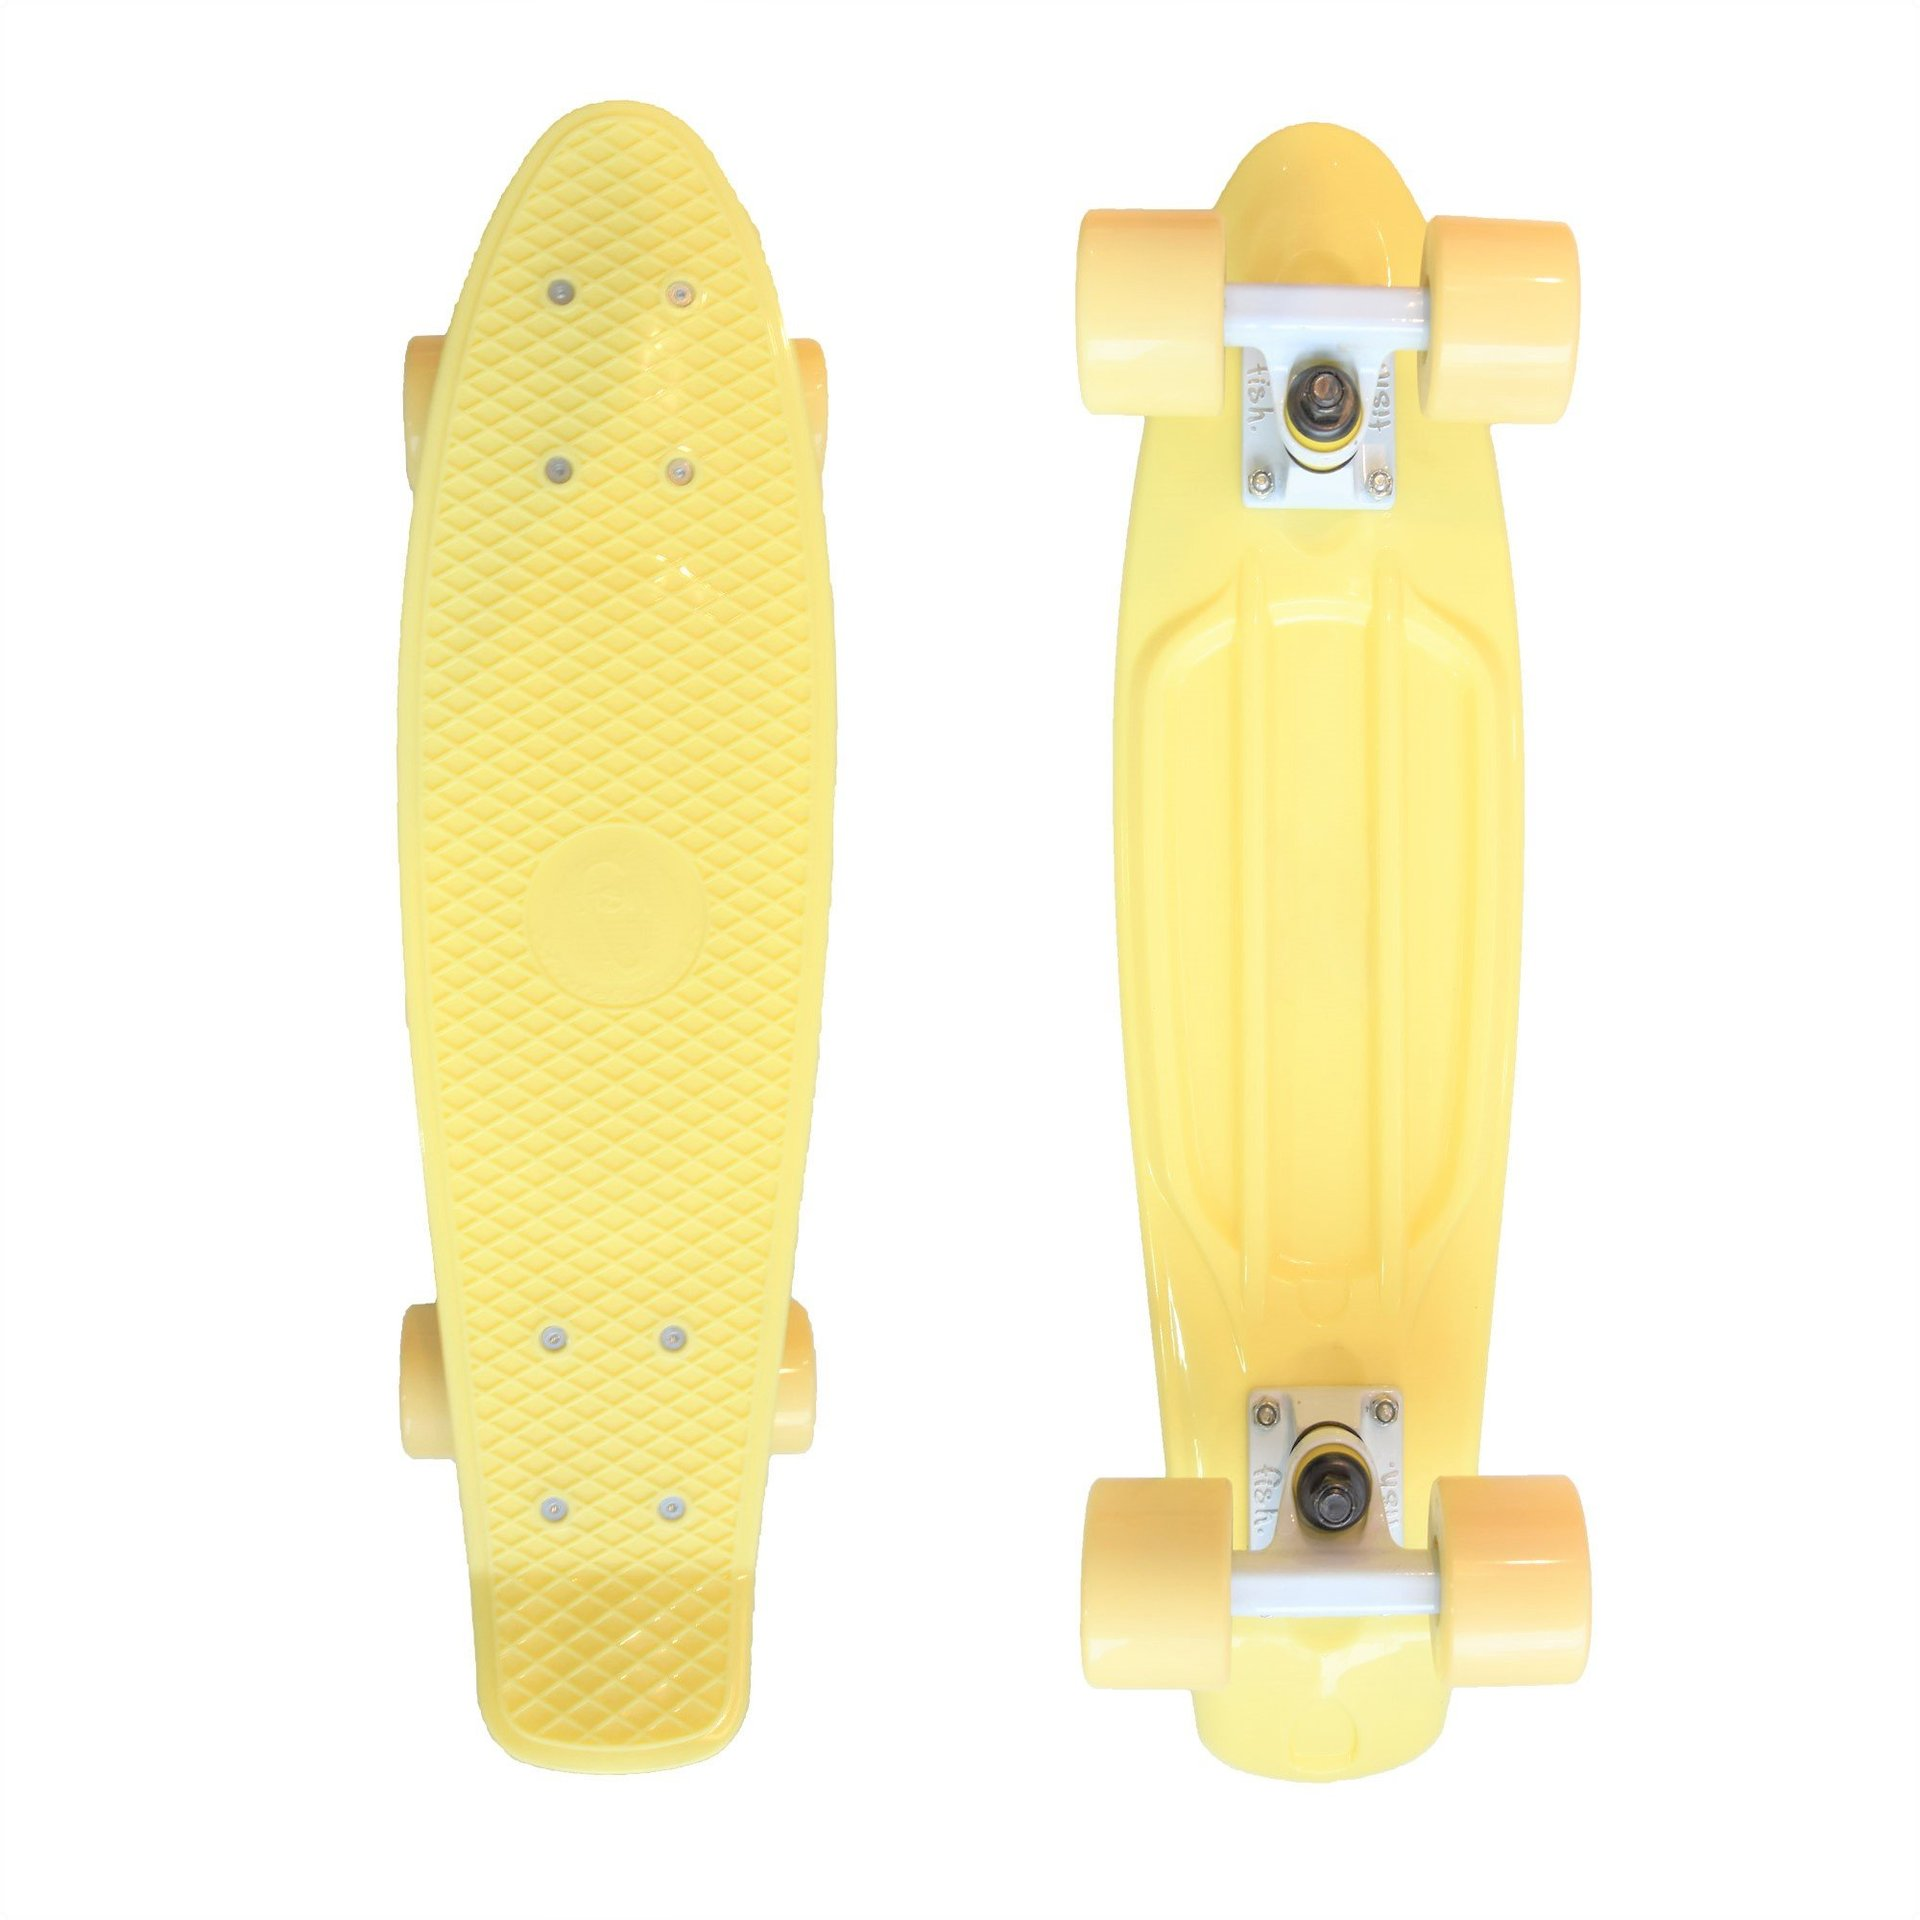 FISHBOARD FISH SKATEBOARDS CLASSIC SUMMER YELLOW|WHITE|WHITE 1